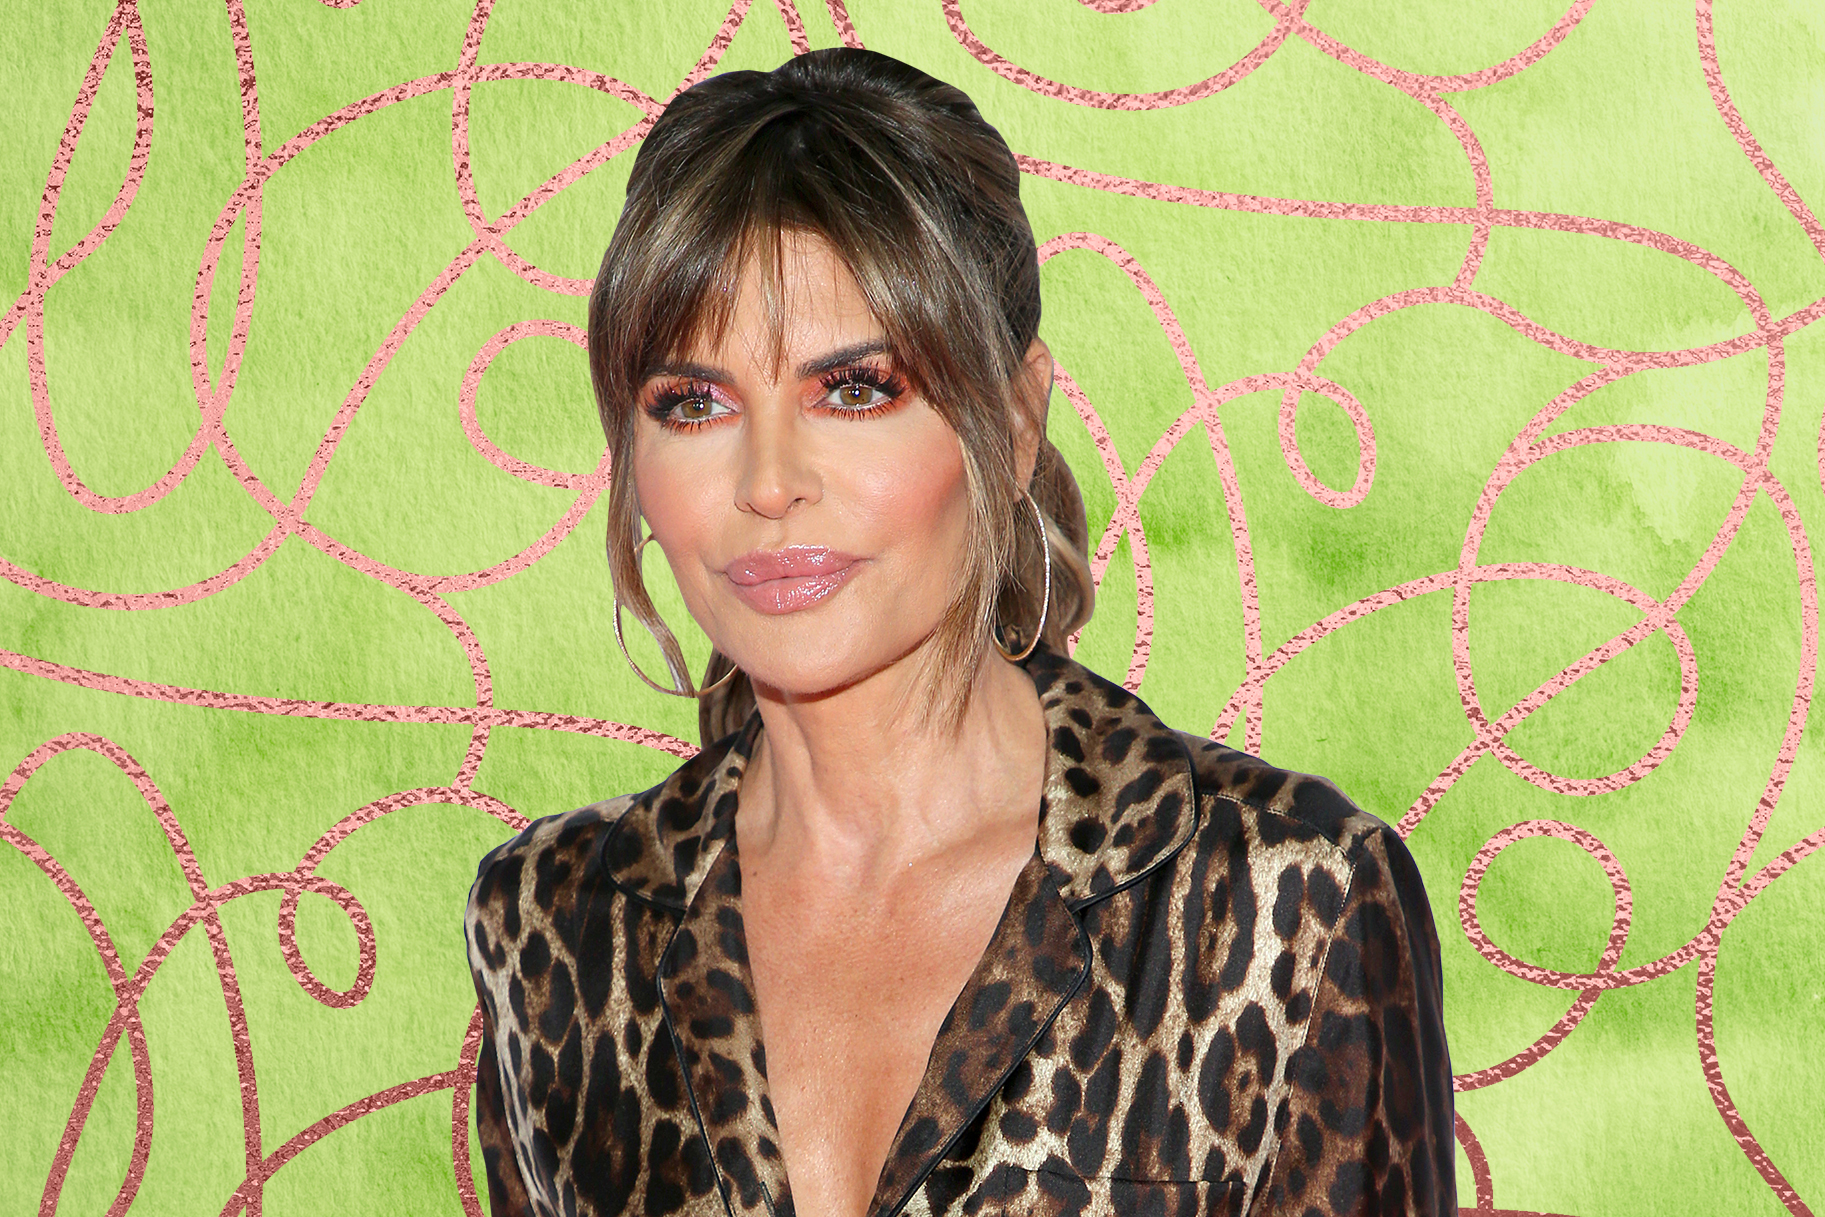 petition-to-remove-lisa-rinna-from-rhobh-reaches-2000-signatures-heres-why-some-fans-want-her-gone